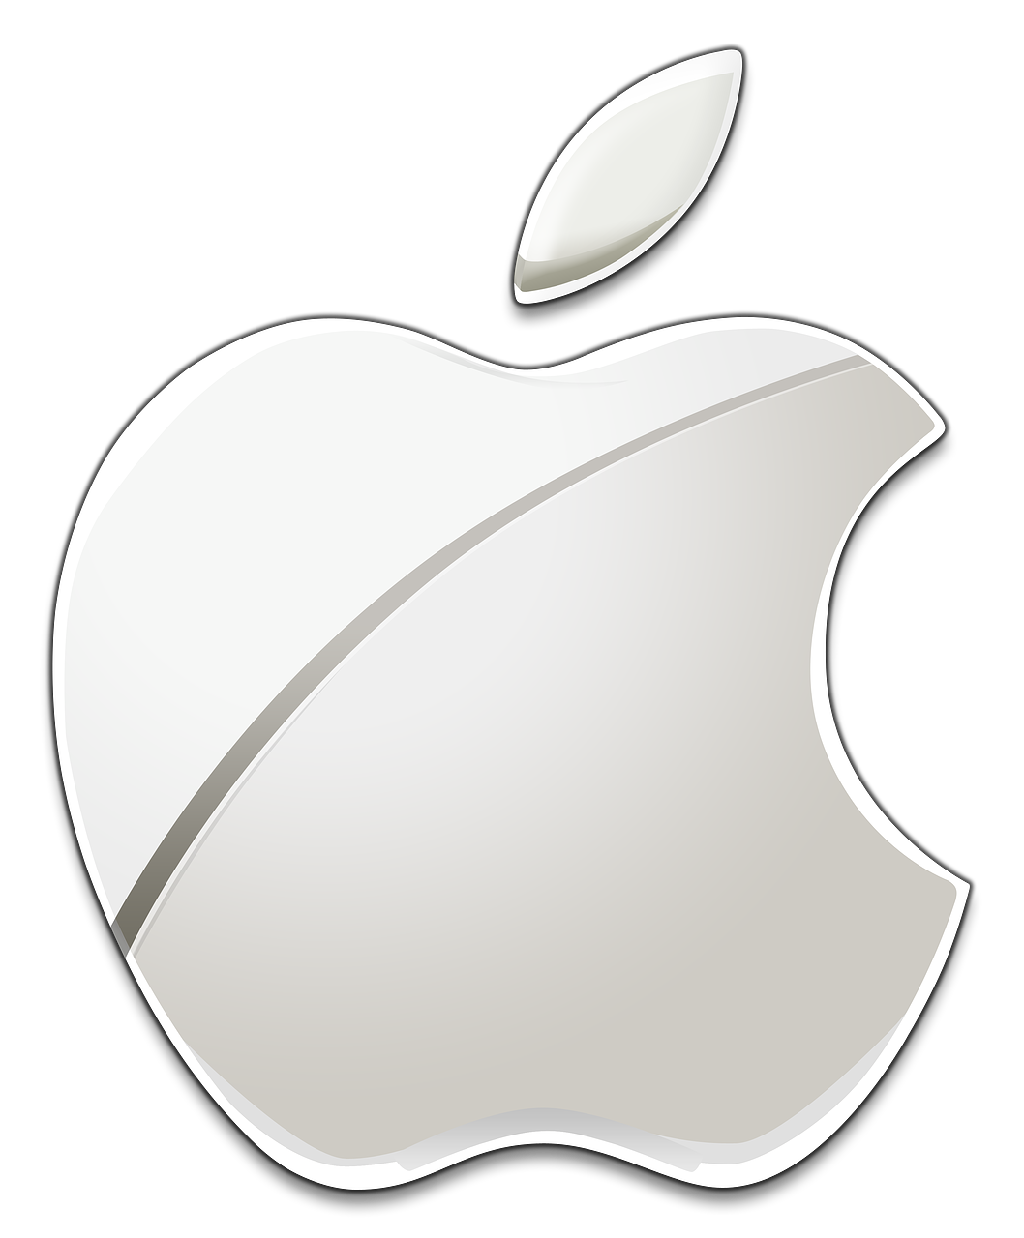 Logo Apple Ios PNG - 110861